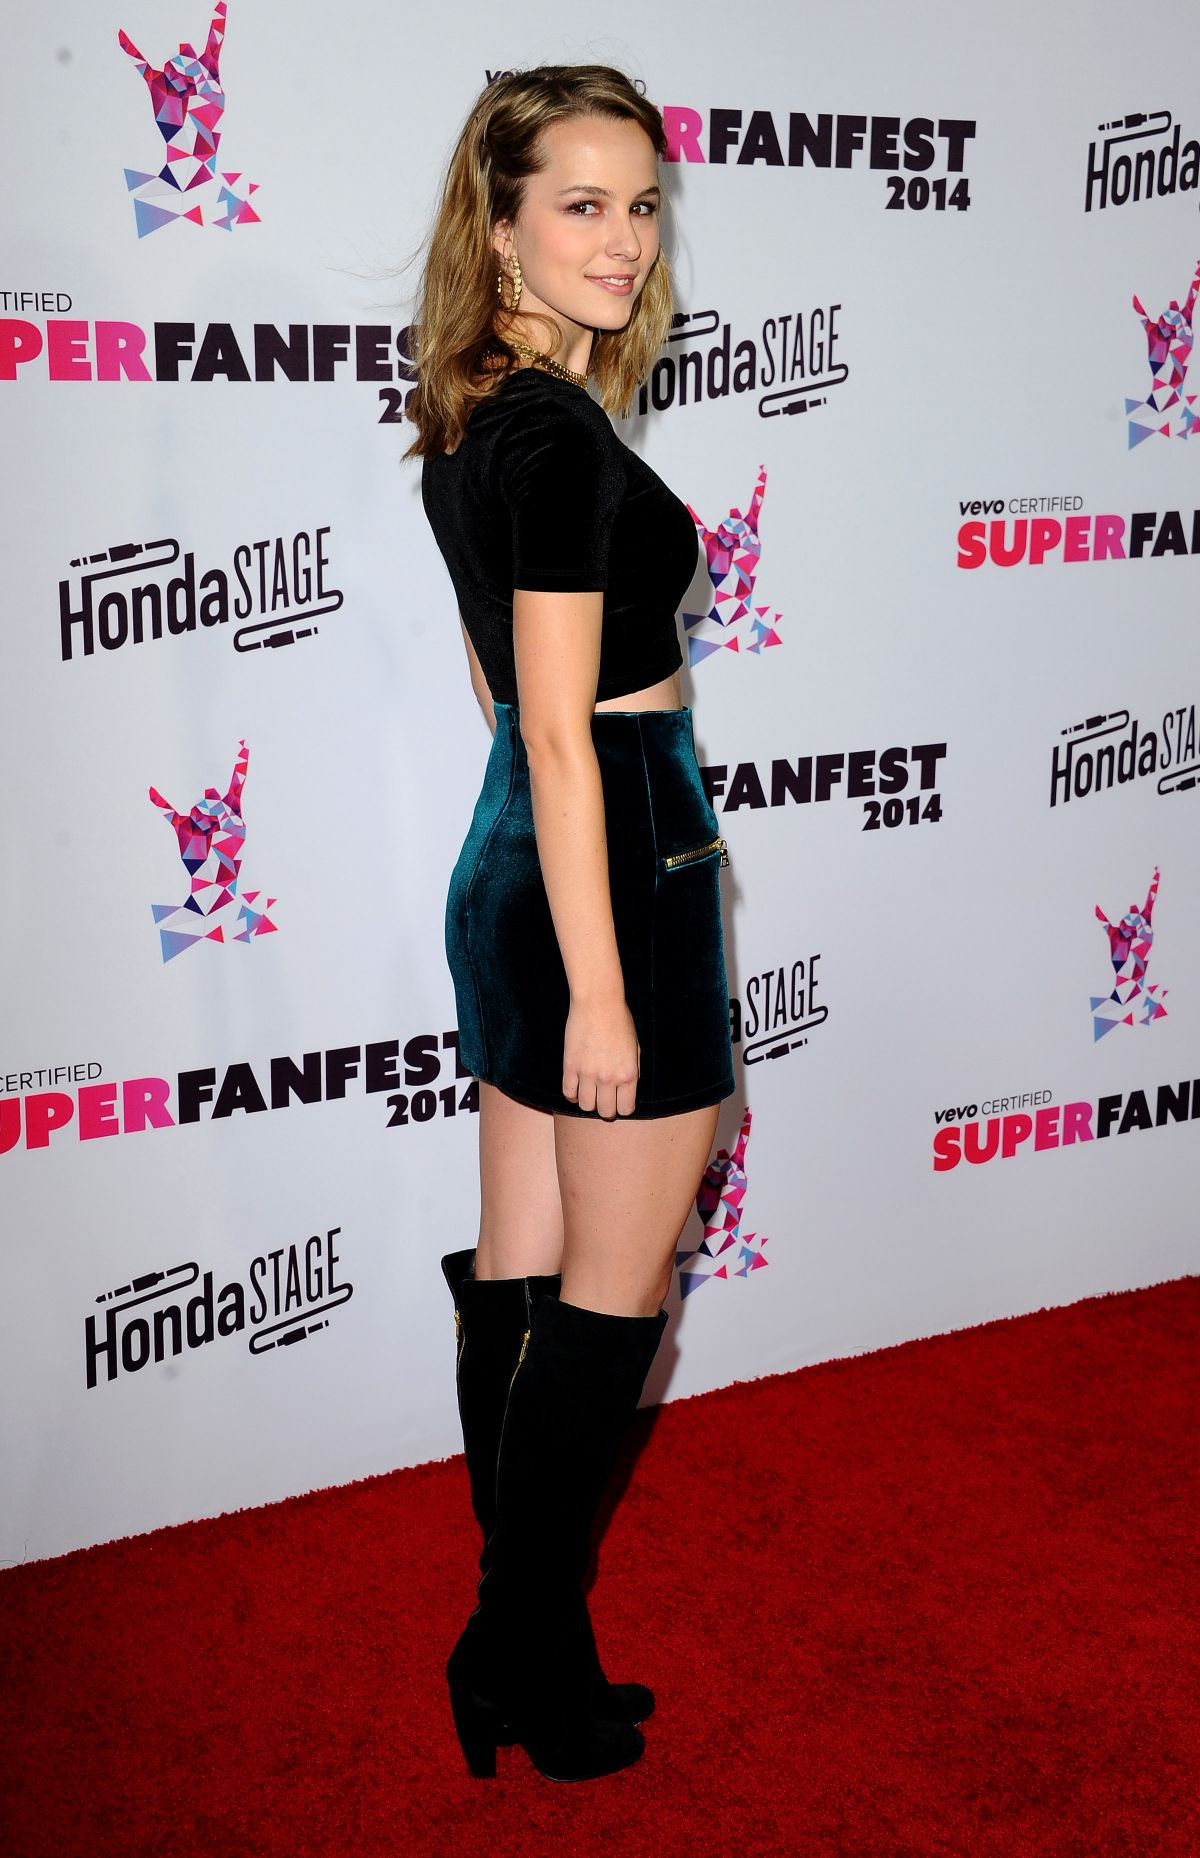 Bridgit Mendler At Vevo Certified Superfanfest